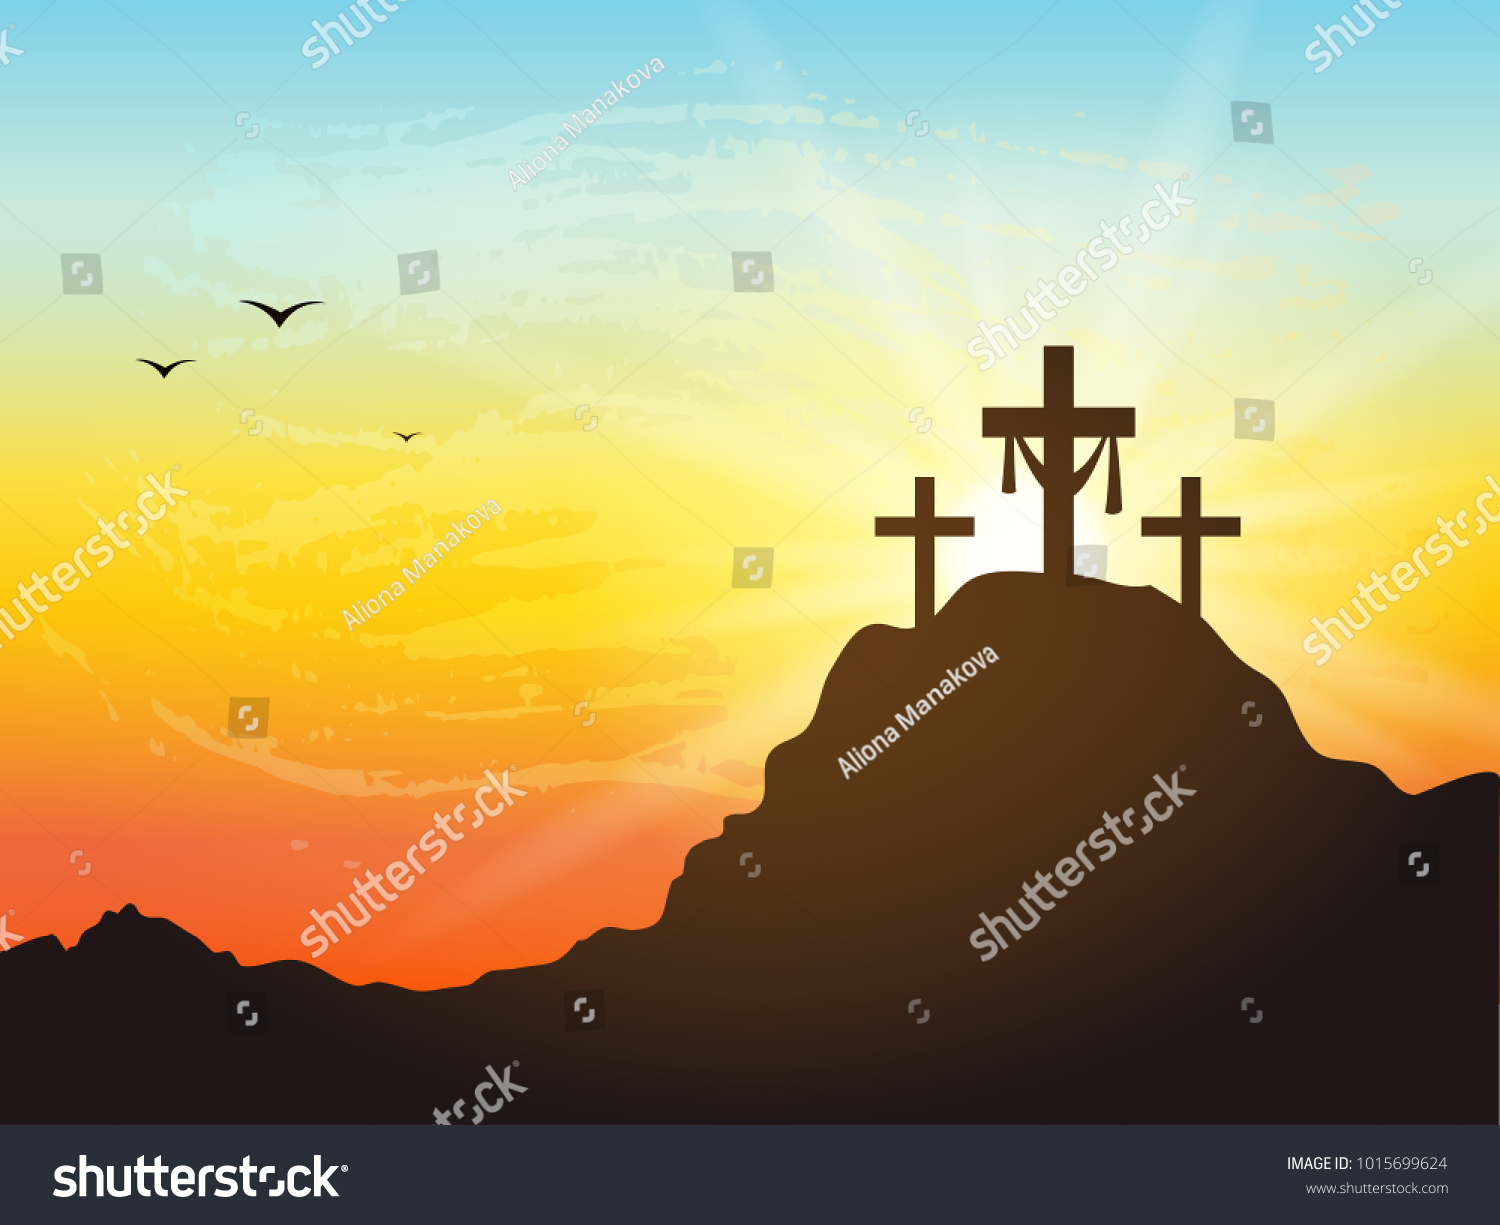 Calvary hill silhouettes cross cross symbol stock vector calvary hill with silhouettes of the cross cross symbol for jesus christ is risen buycottarizona Image collections